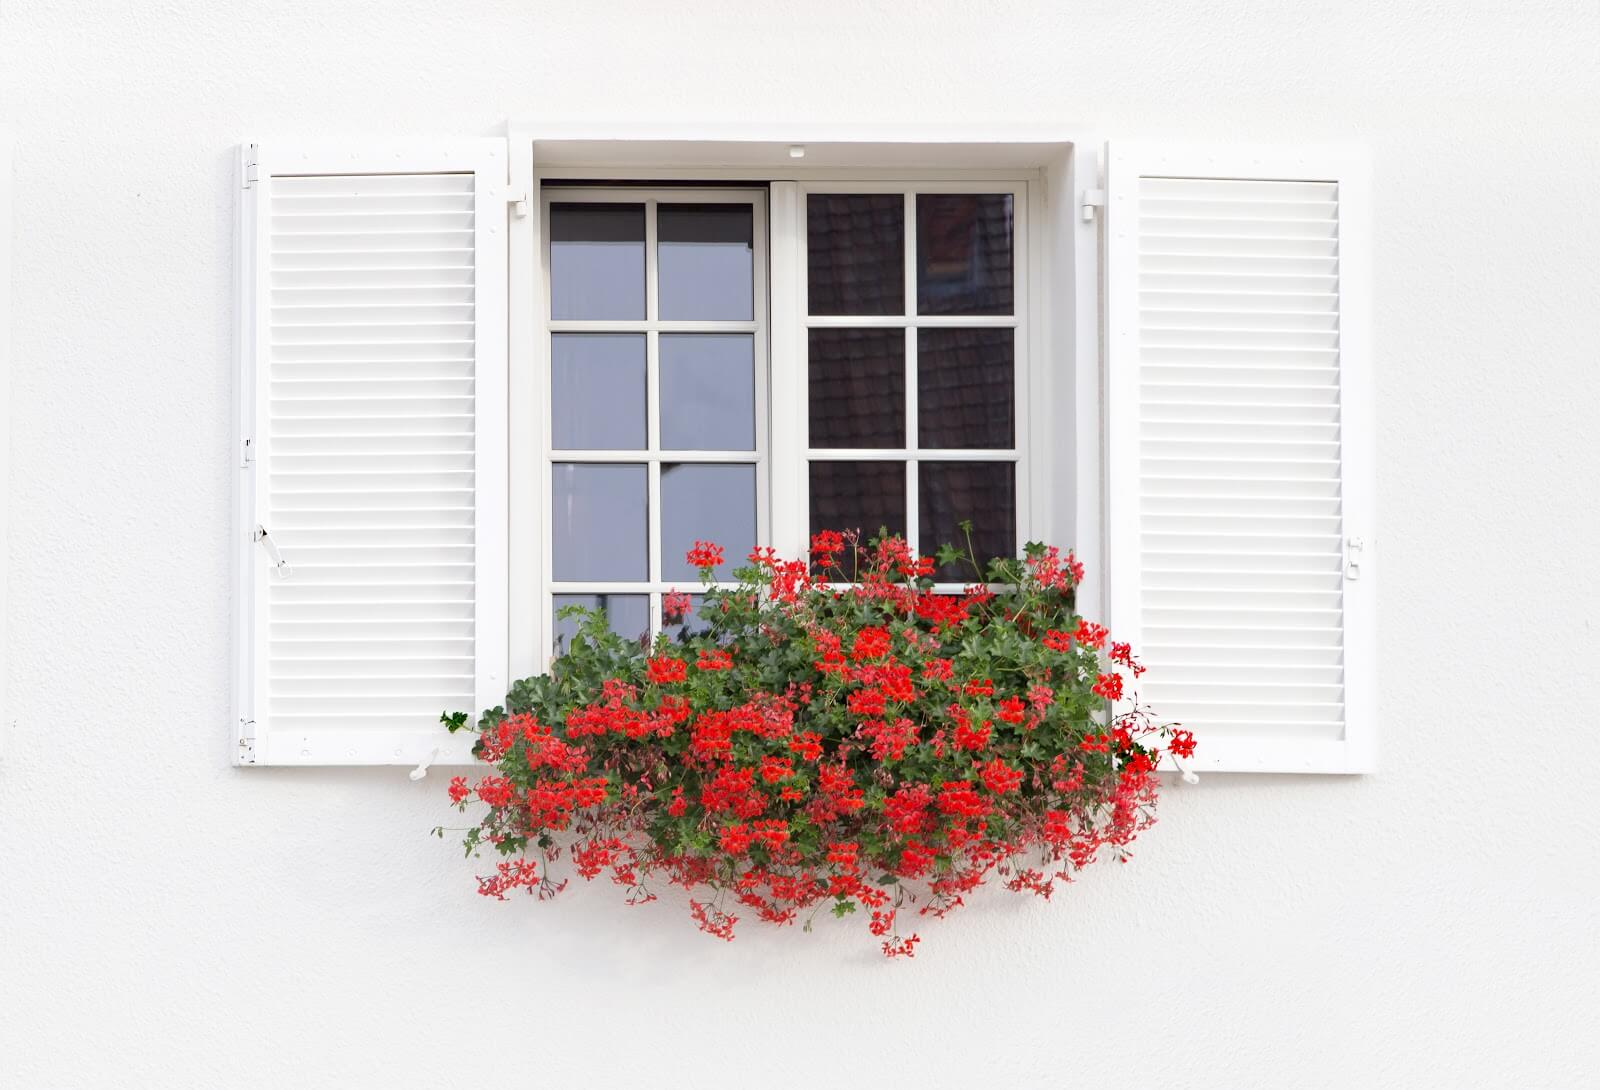 How to make WPC Windows? | Complete Installation and Assembling Guide